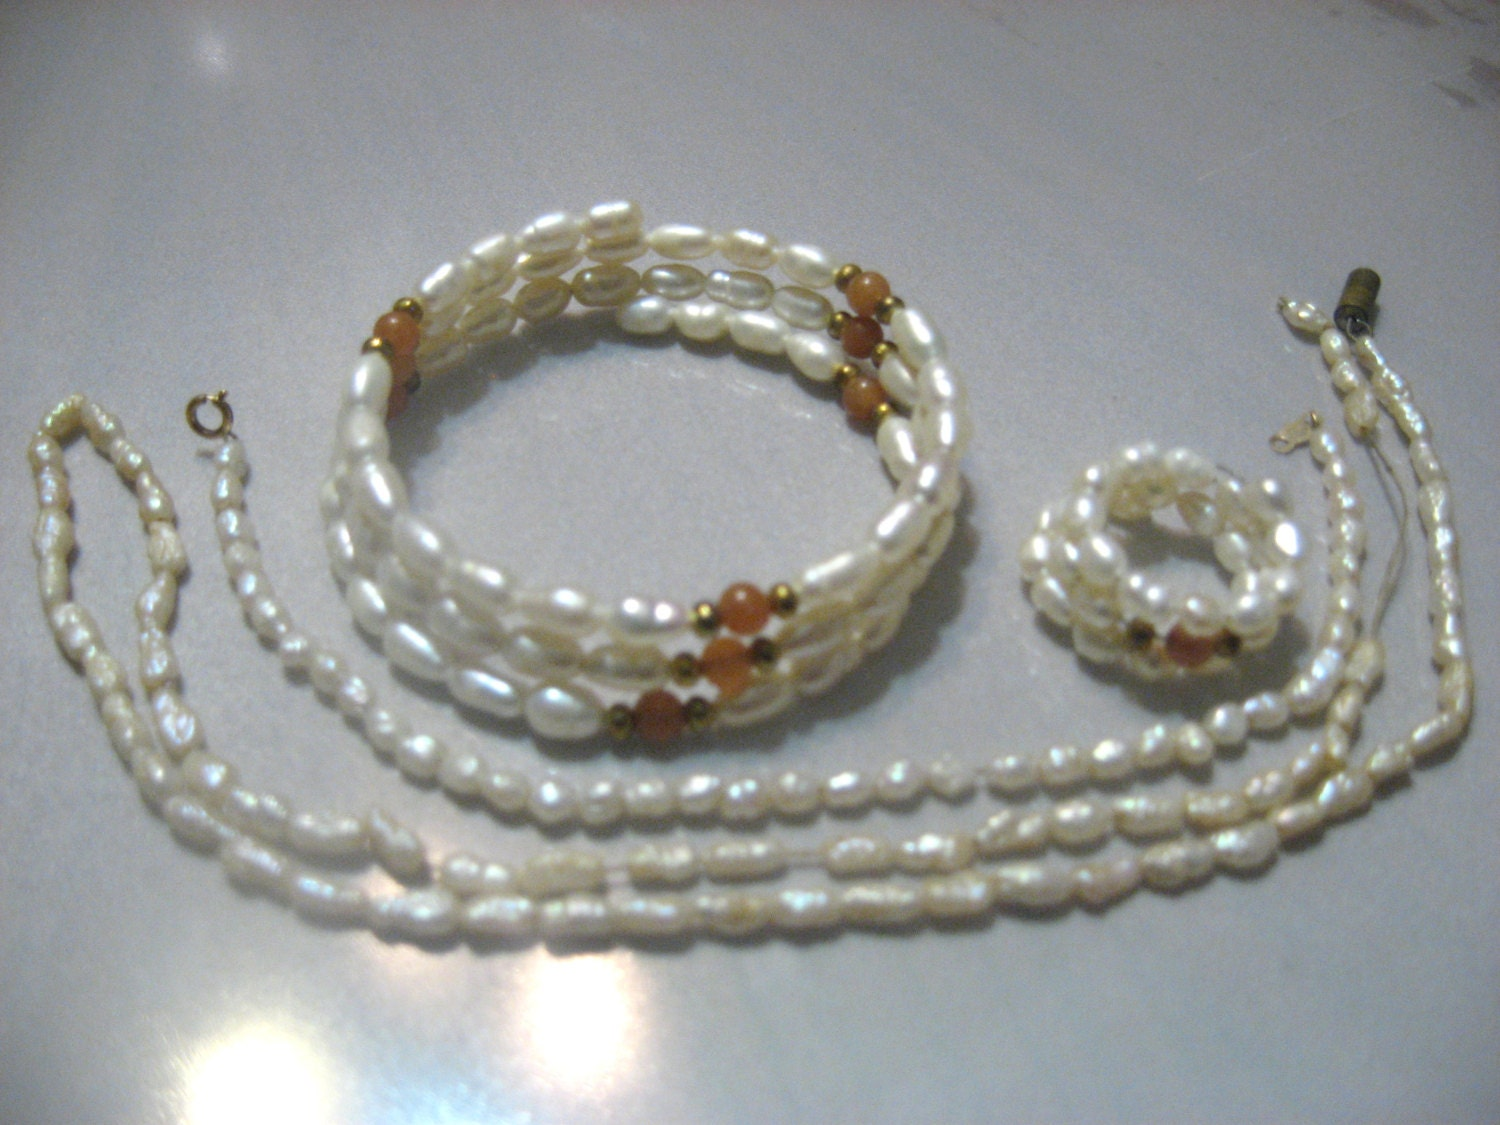 tennessee pearl jewelry set 2 bracelets ring by tevryr on etsy. Black Bedroom Furniture Sets. Home Design Ideas